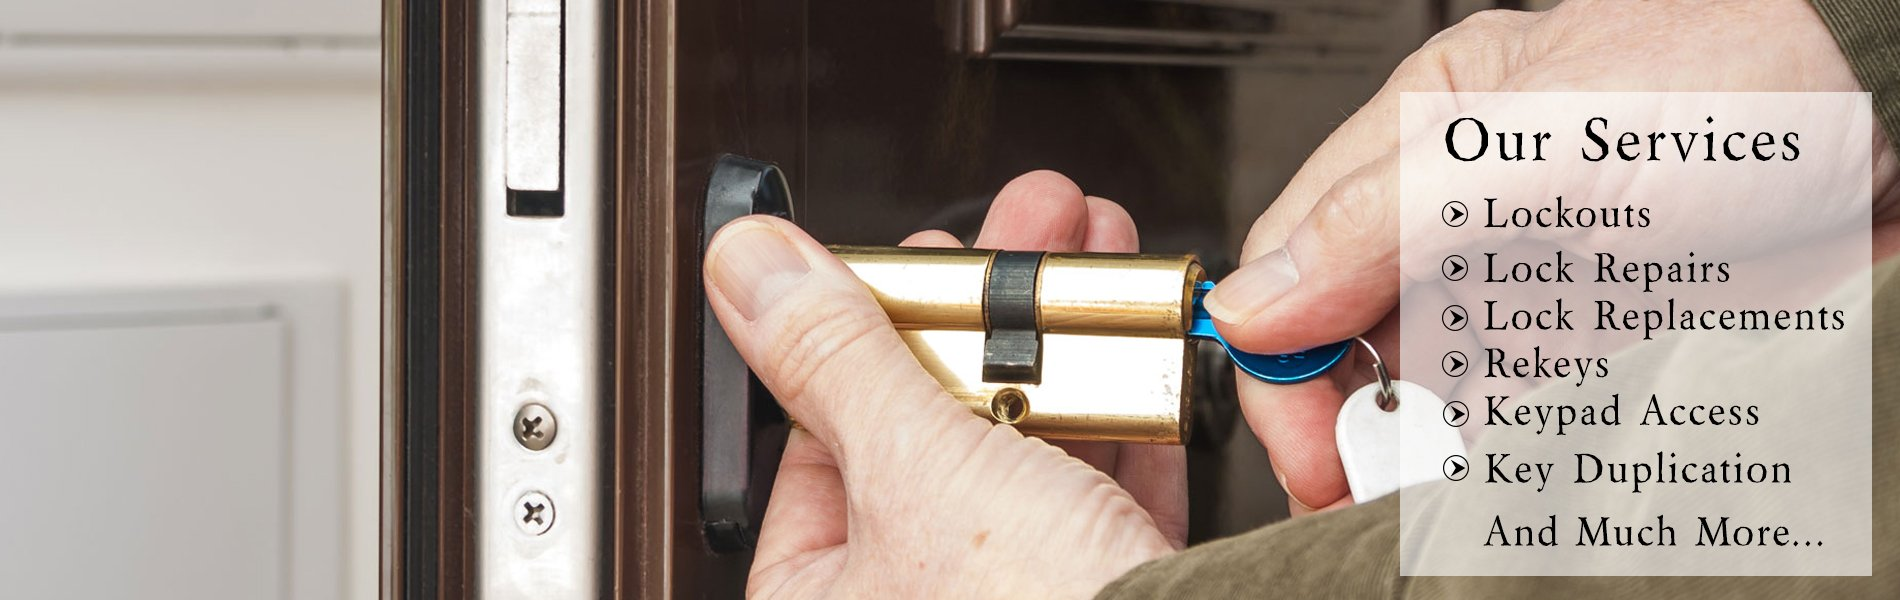 Community Locksmith Store Garland, TX 972-512-6369